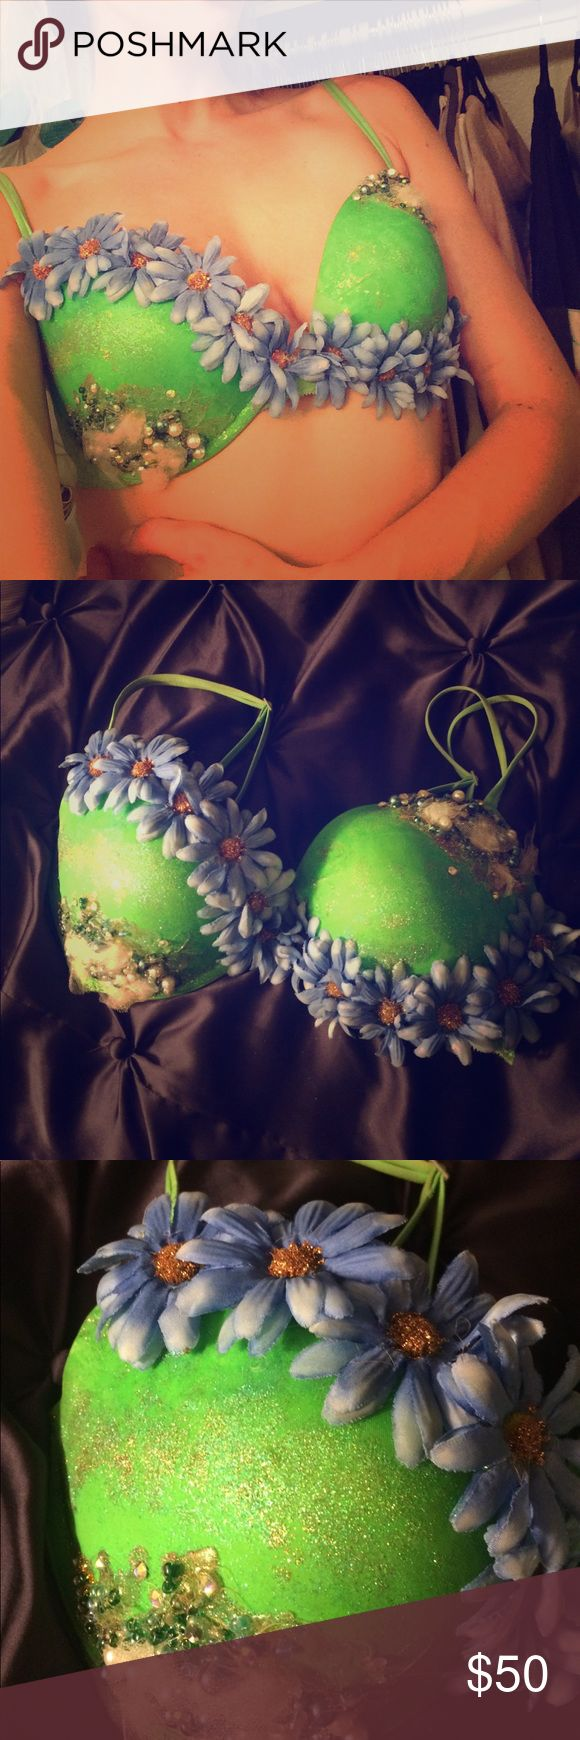 Flowered Festival Bra Built off of a Victoria's Secret push up bra and worn once. Embellished with faux pearls, beads and sequins. PINK Victoria's Secret Intimates & Sleepwear Bras